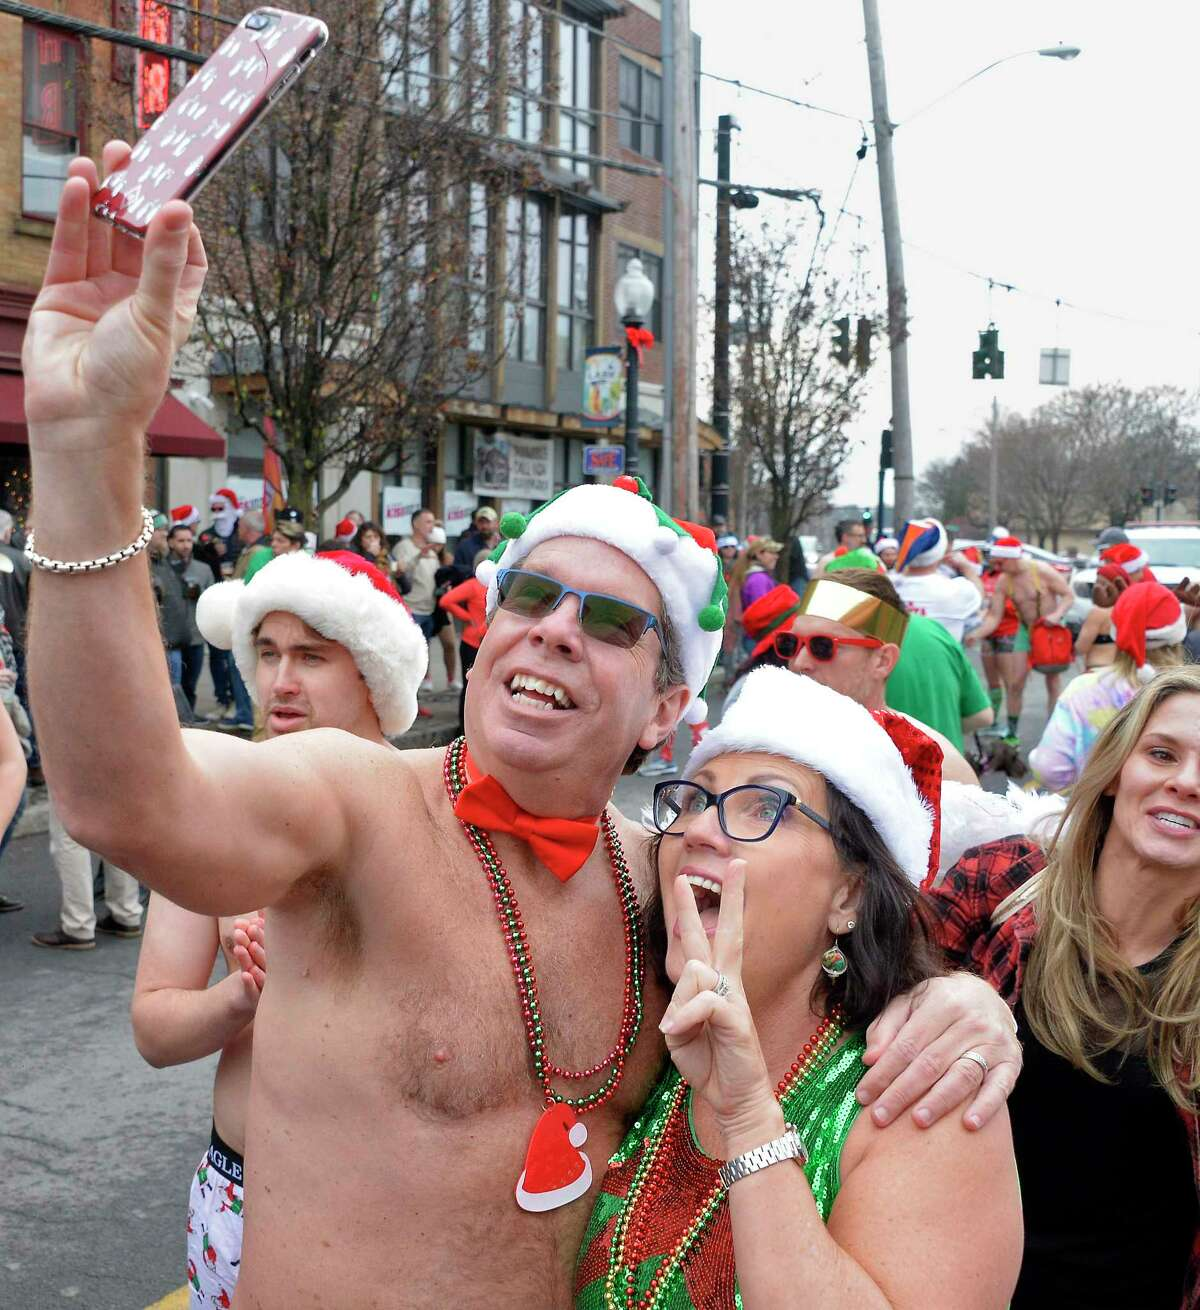 Husband and wife Jerry and Jen Pittz of Guilderland snap a selfie before the start of the 13th Annual Santa Speedo Sprint to benefit the Albany Damien Center and the HIV/AIDS program at Albany Medical Center Saturday Dec. 15, 2018 in Albany, NY. (John Carl D'Annibale/Times Union)